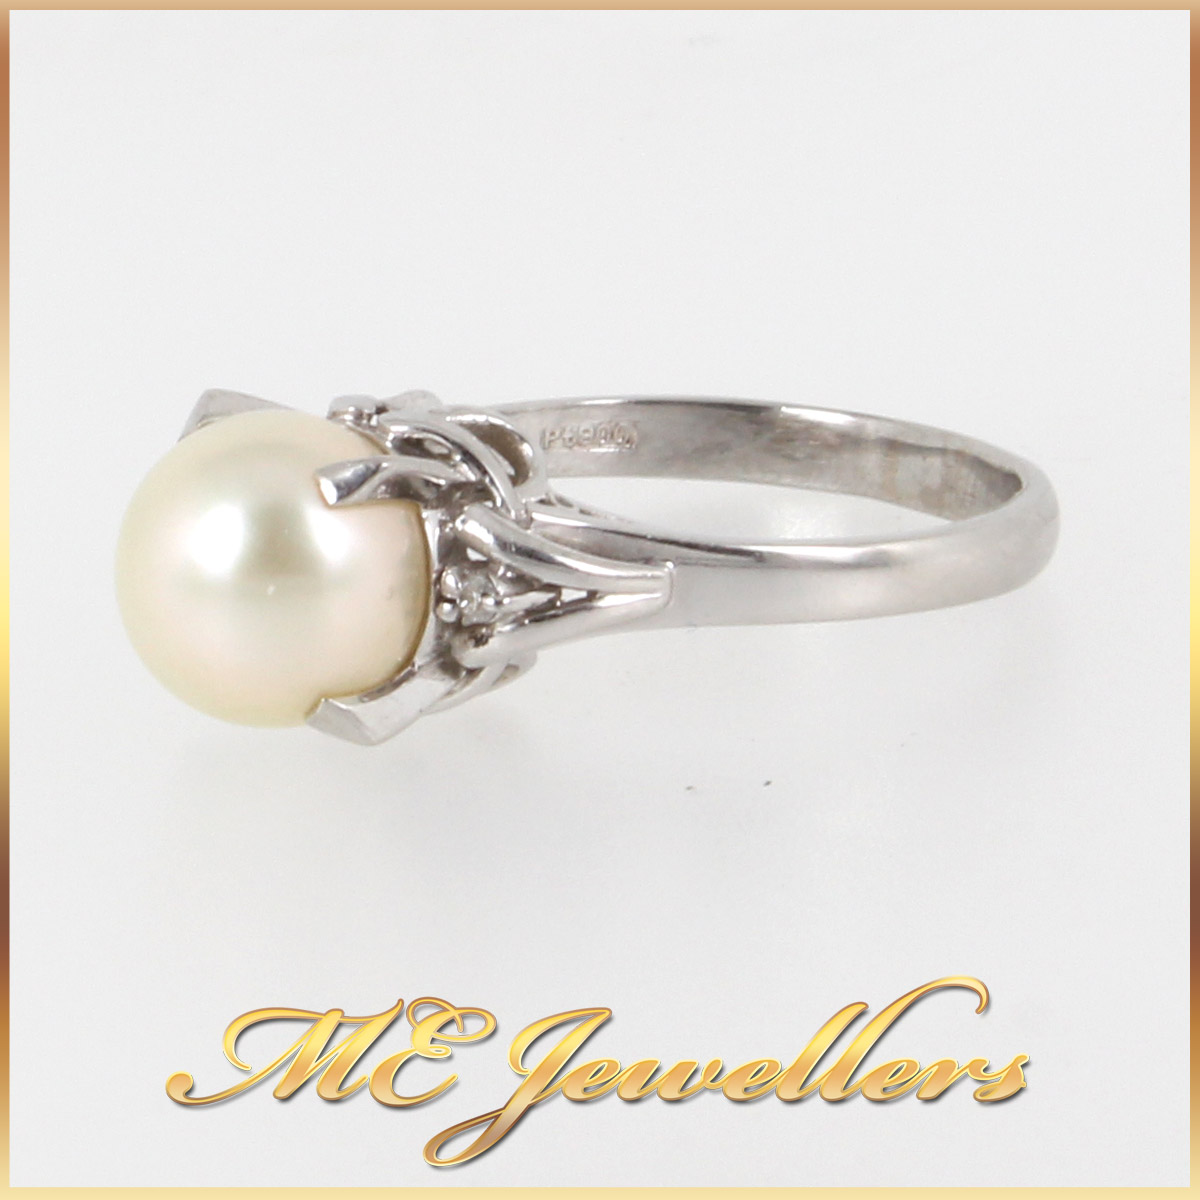 1377 Pearl Dress Ring In Platinum side 1